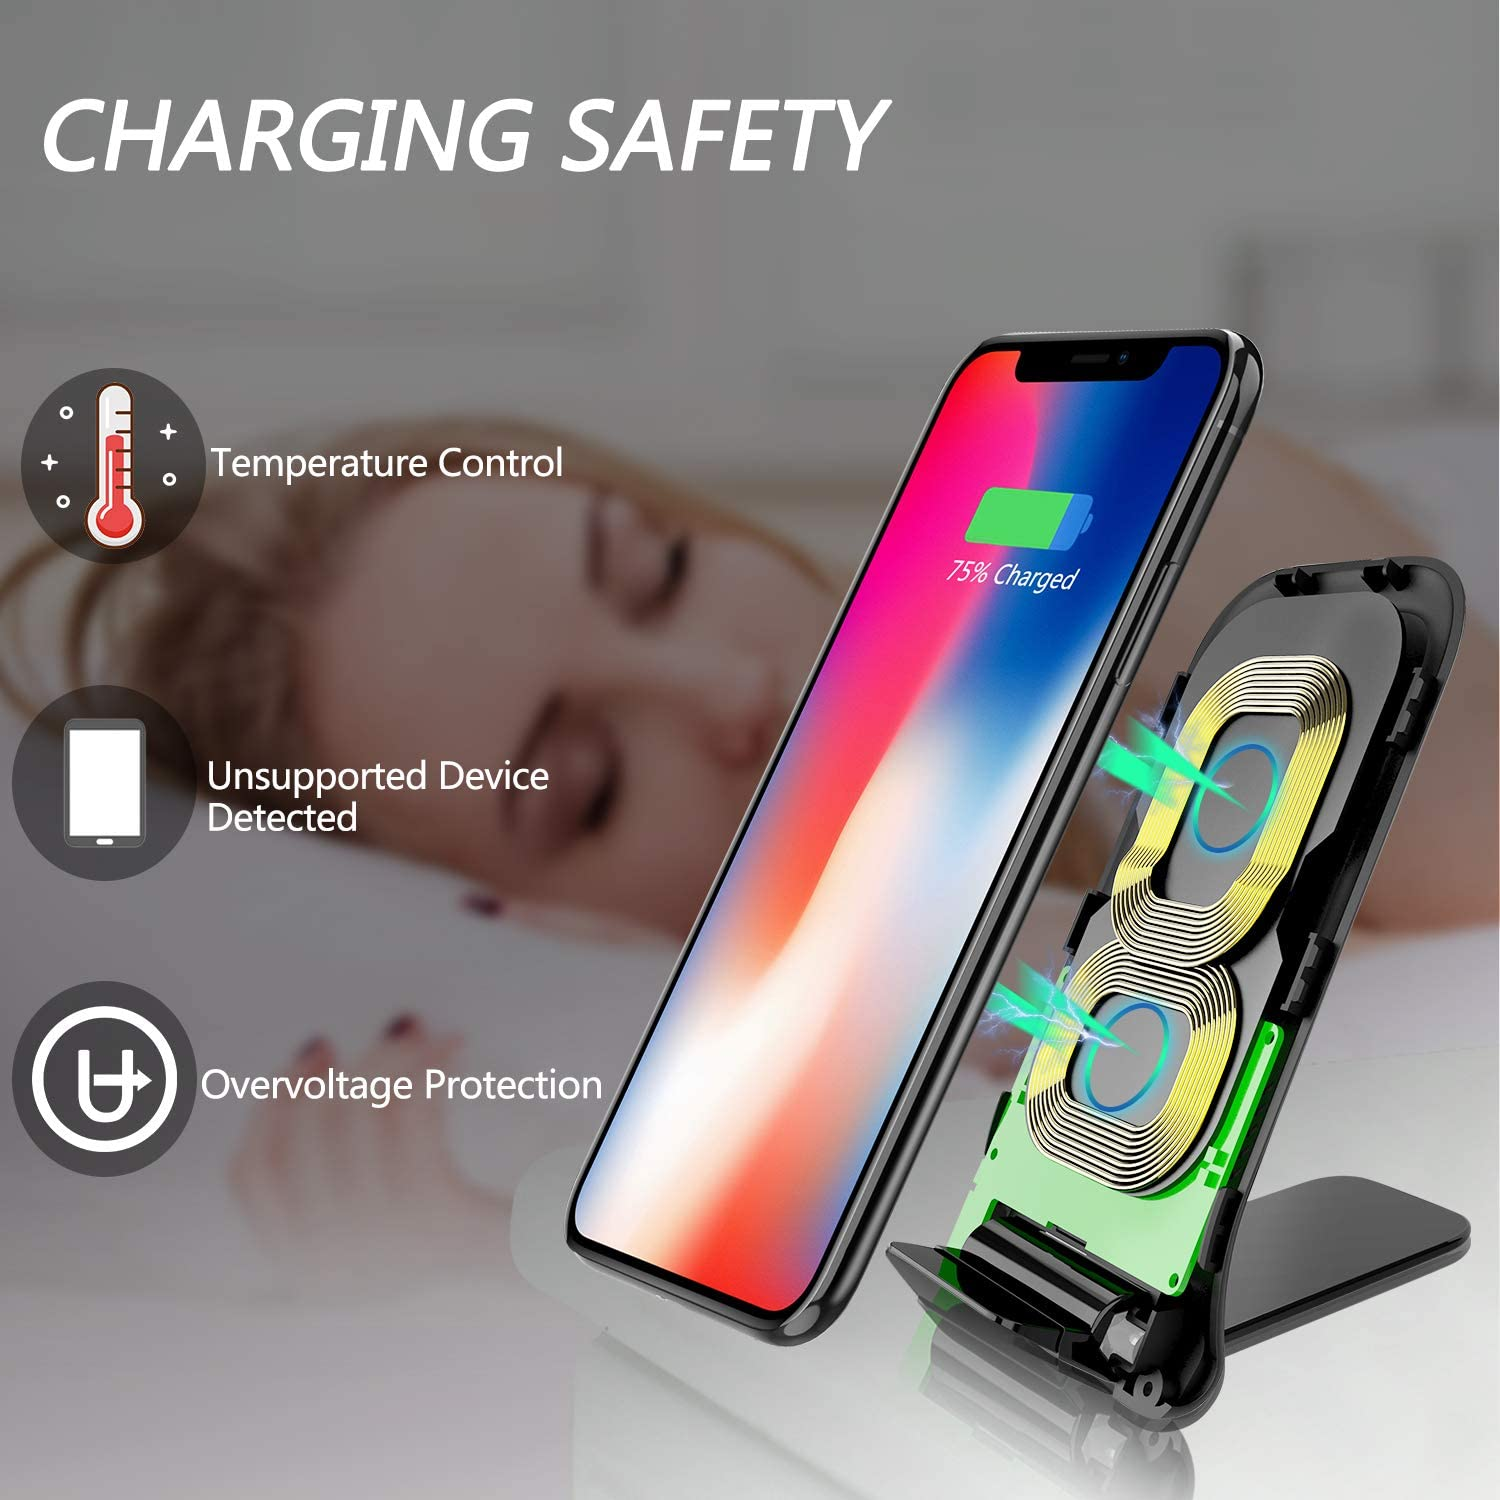 BIAL Wireless Charger Qi-Certified Fast Wireless Charging Stand 7.5W Charging Compatible with iPhone X//8//8 Plus,10W Wireless Charging Compatible Samsung S9//S9+//S8//S8+//S7//Note 8 No AC Adapter